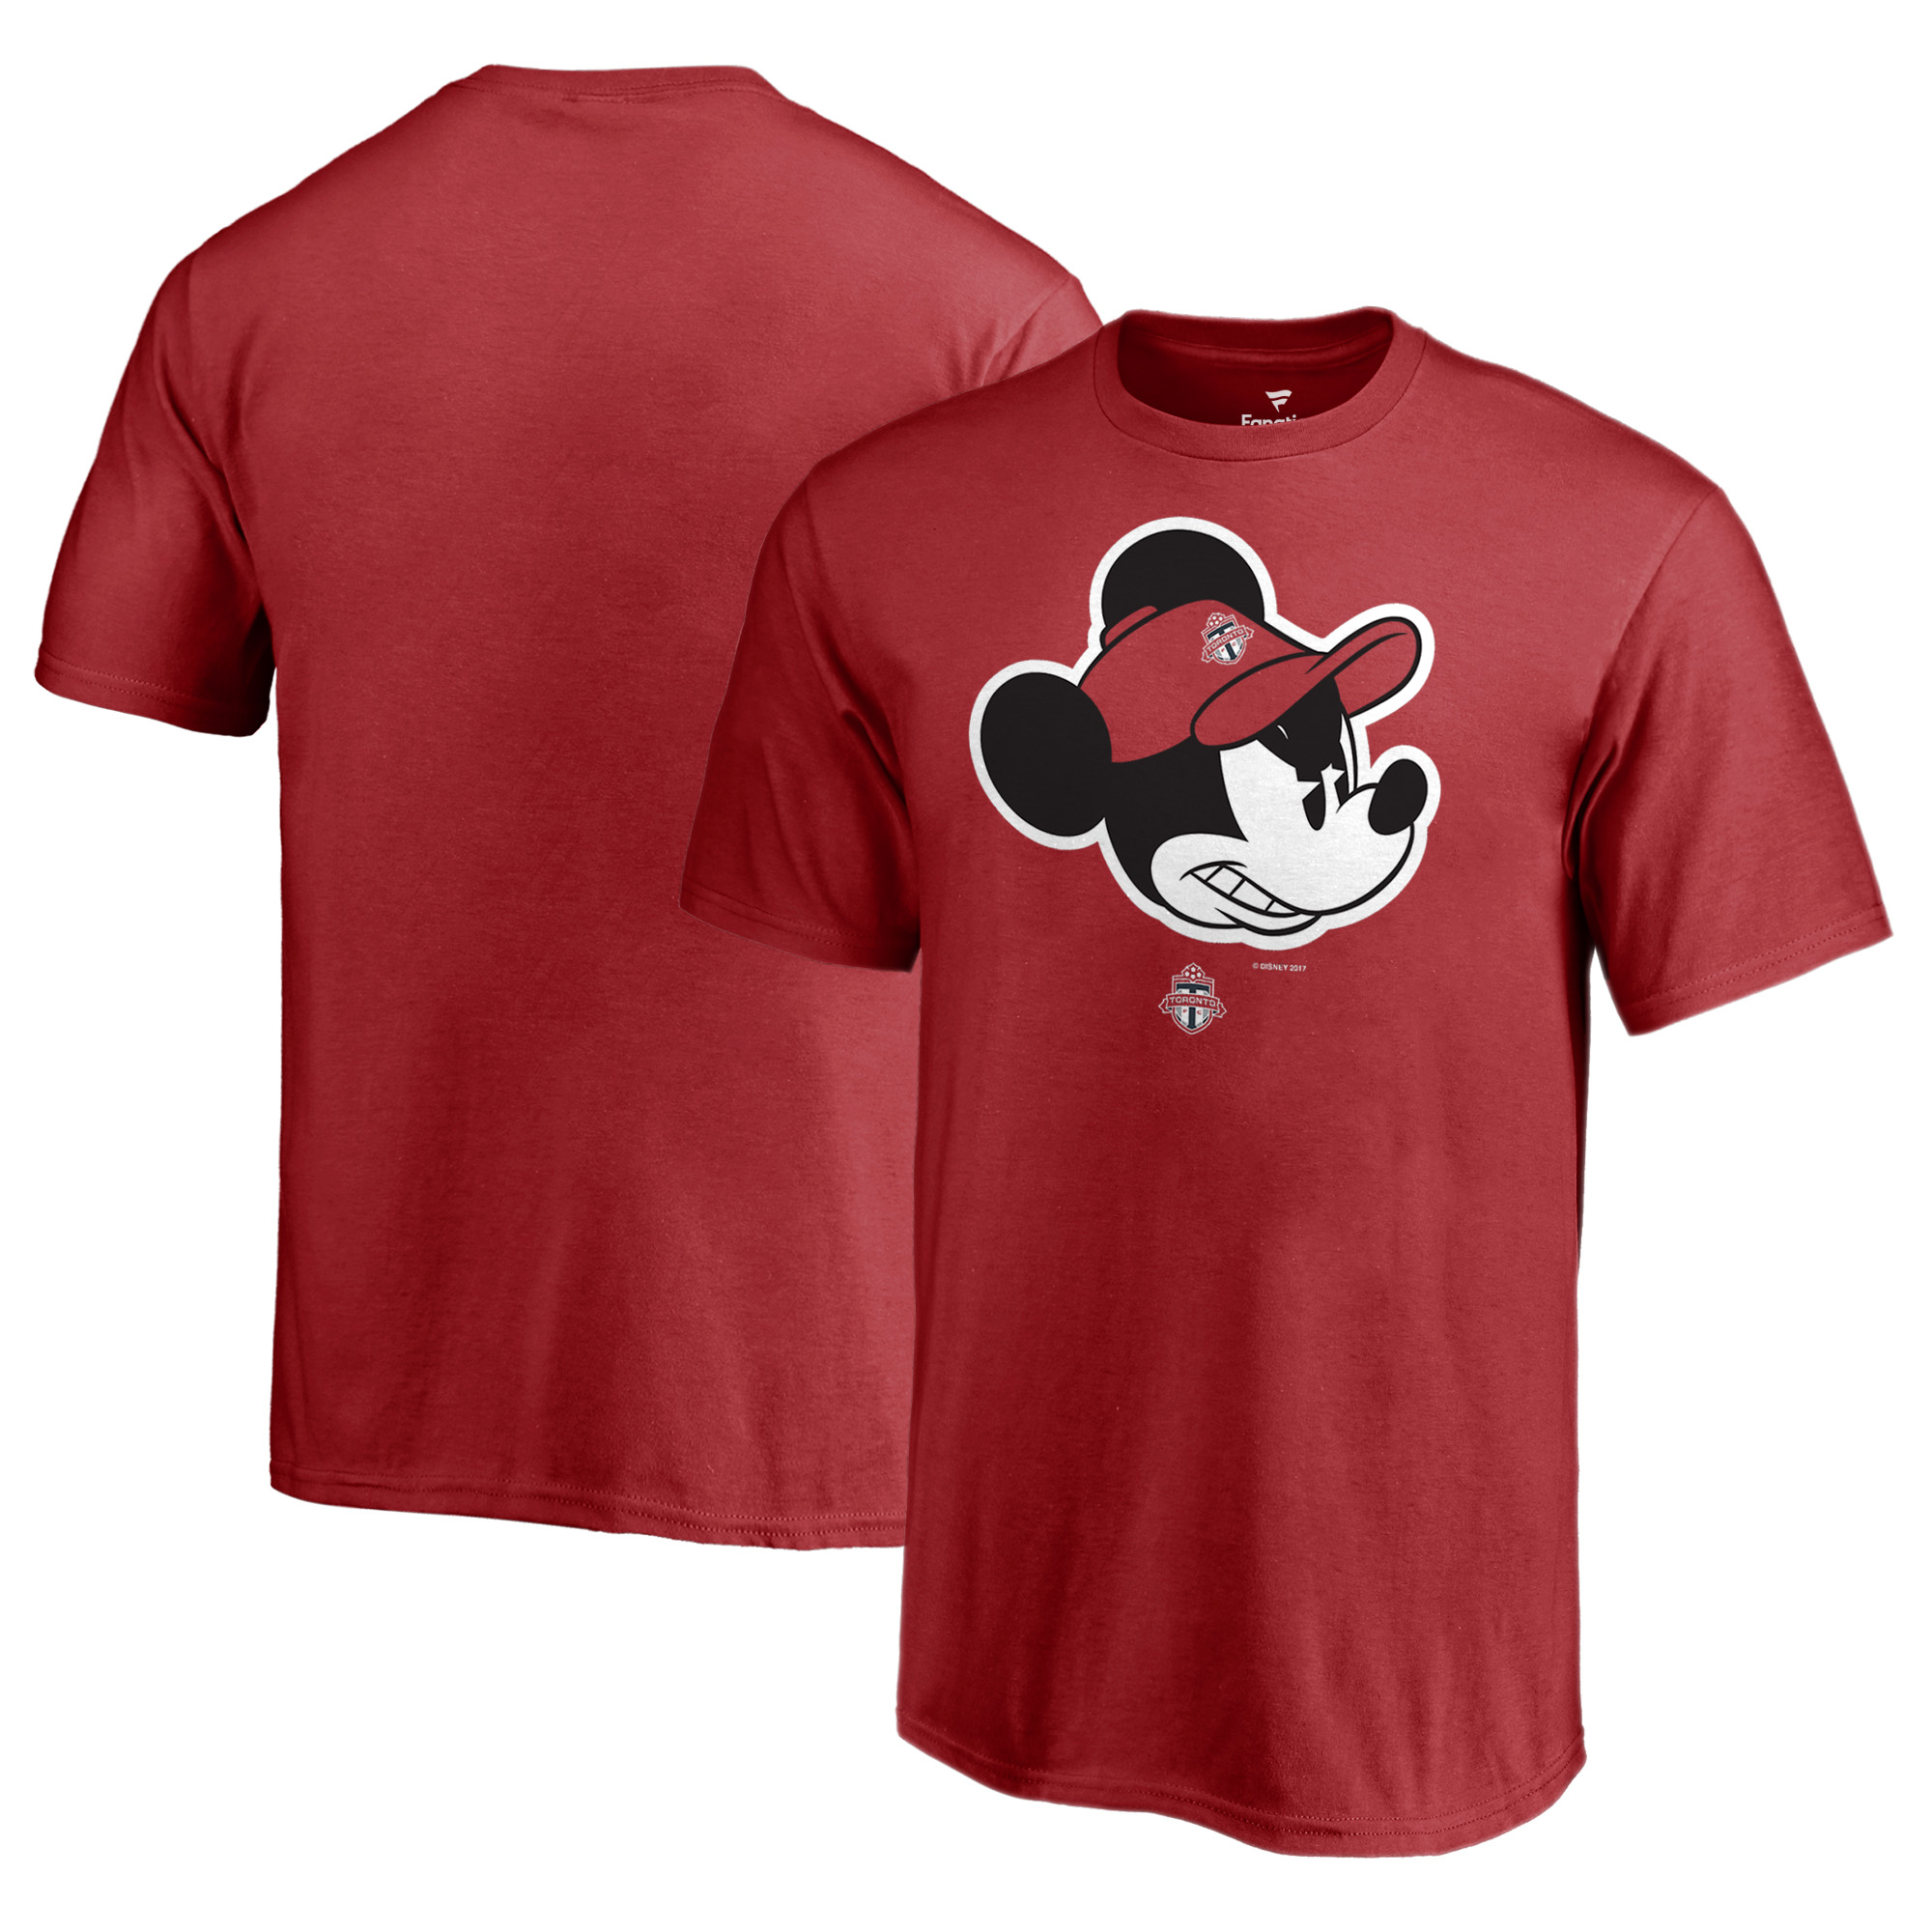 Toronto FC Fanatics Branded Youth Disney Game Face T-Shirt - Red